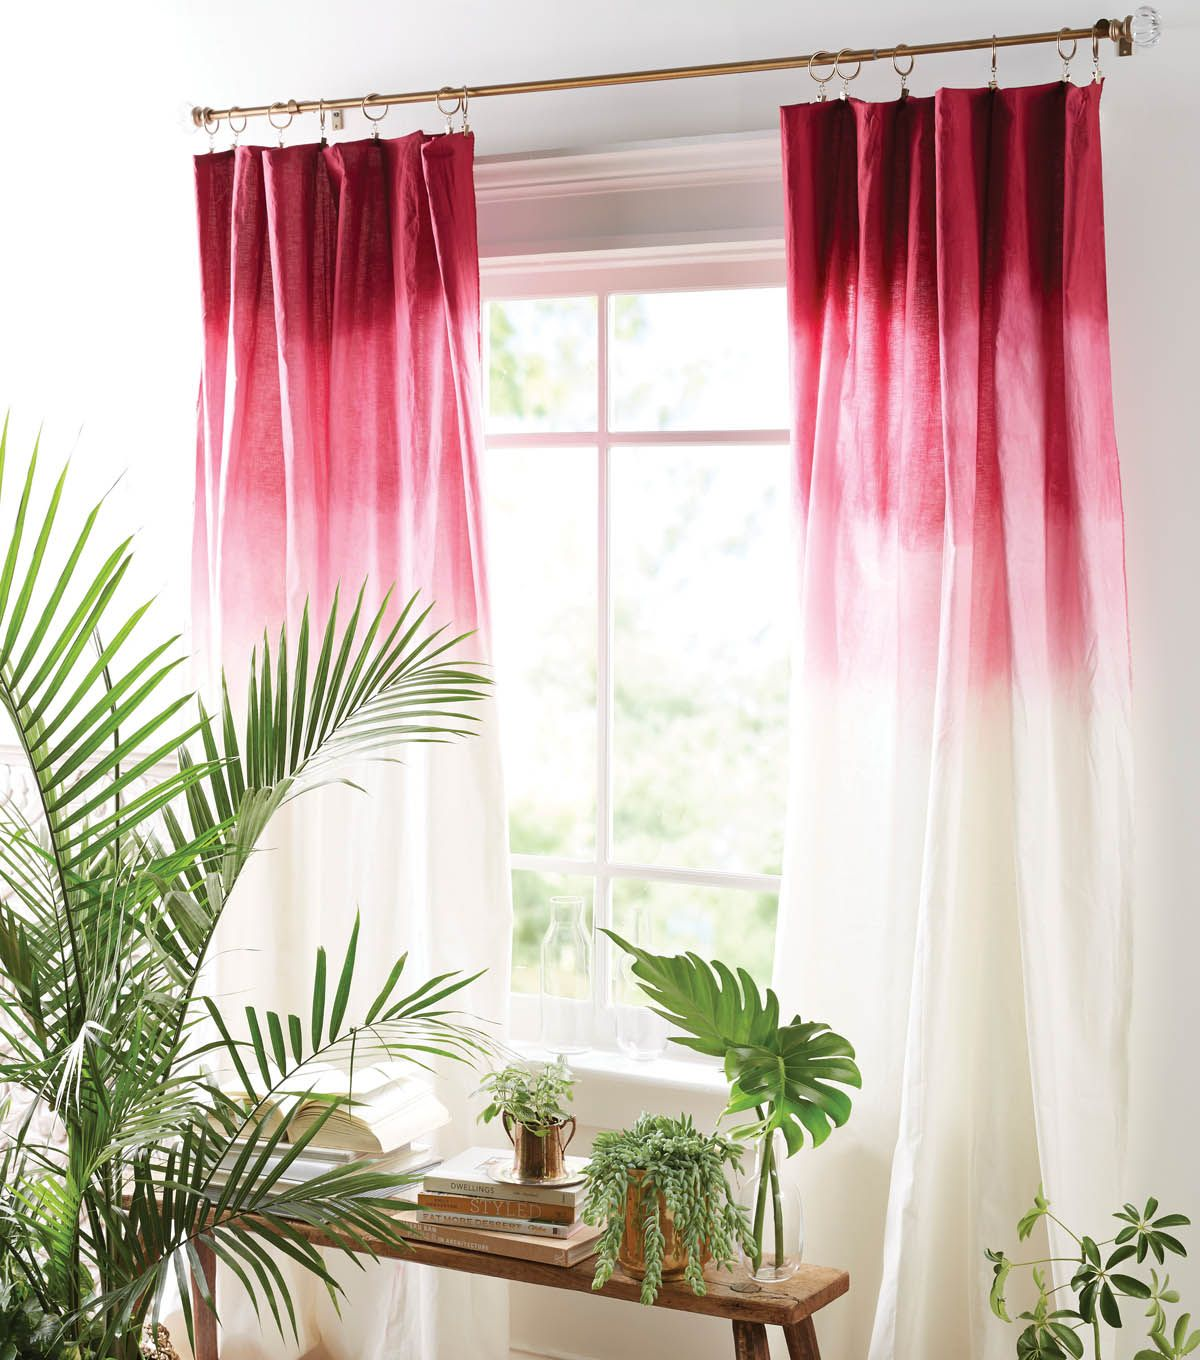 ombre curtains diy home decor home decor with joann pinterest vorh nge gardinen und. Black Bedroom Furniture Sets. Home Design Ideas